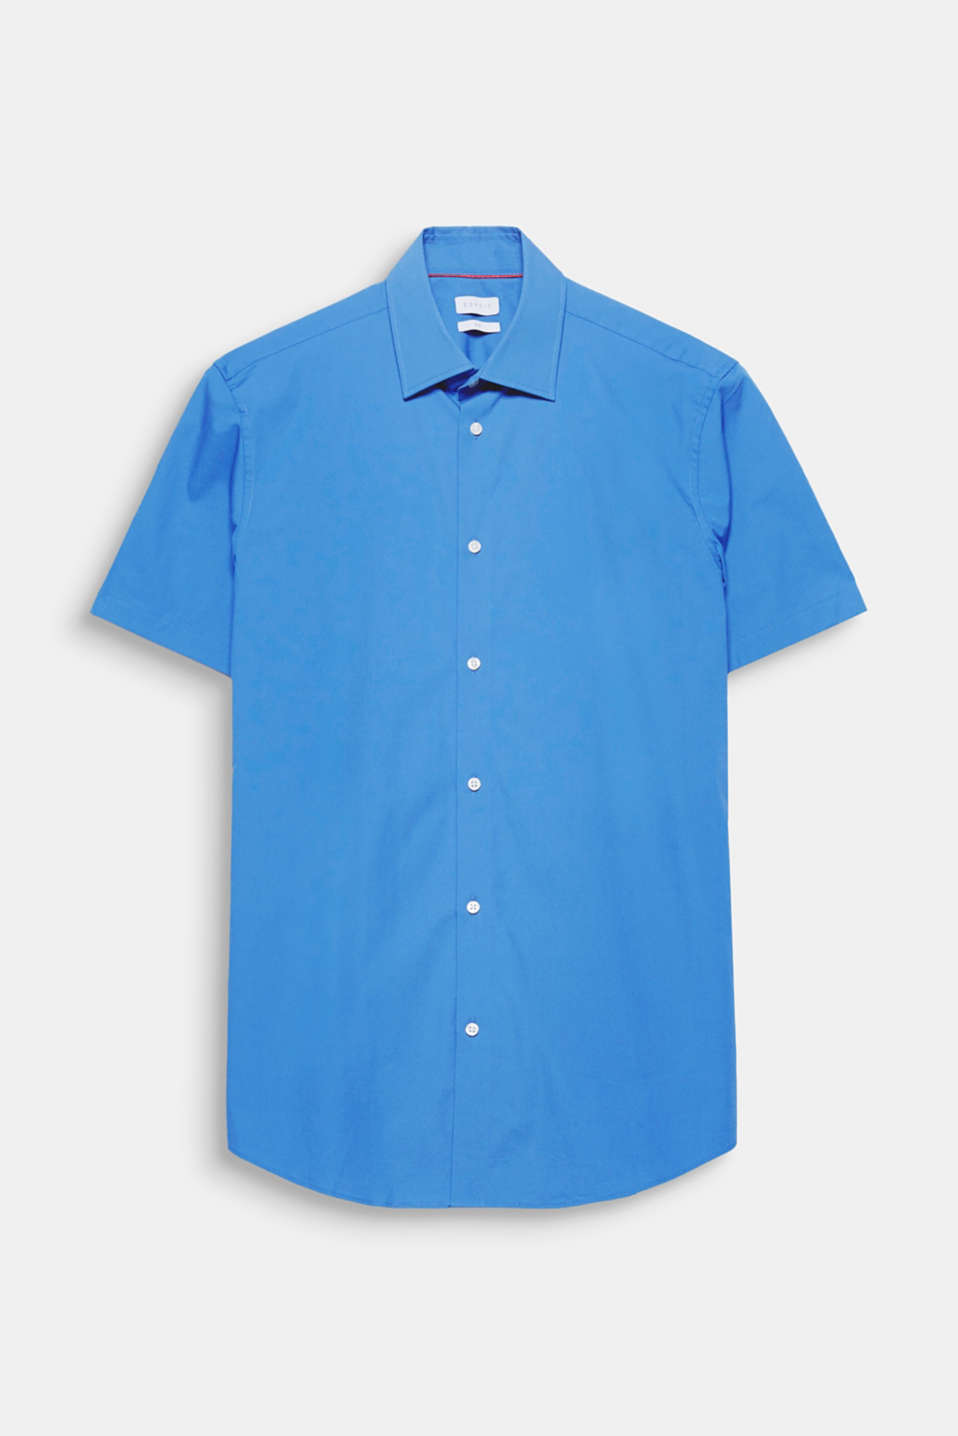 Suit up! Be perfectly dressed even in hot temperatures in this short sleeve shirt made of easy-iron cotton fabric